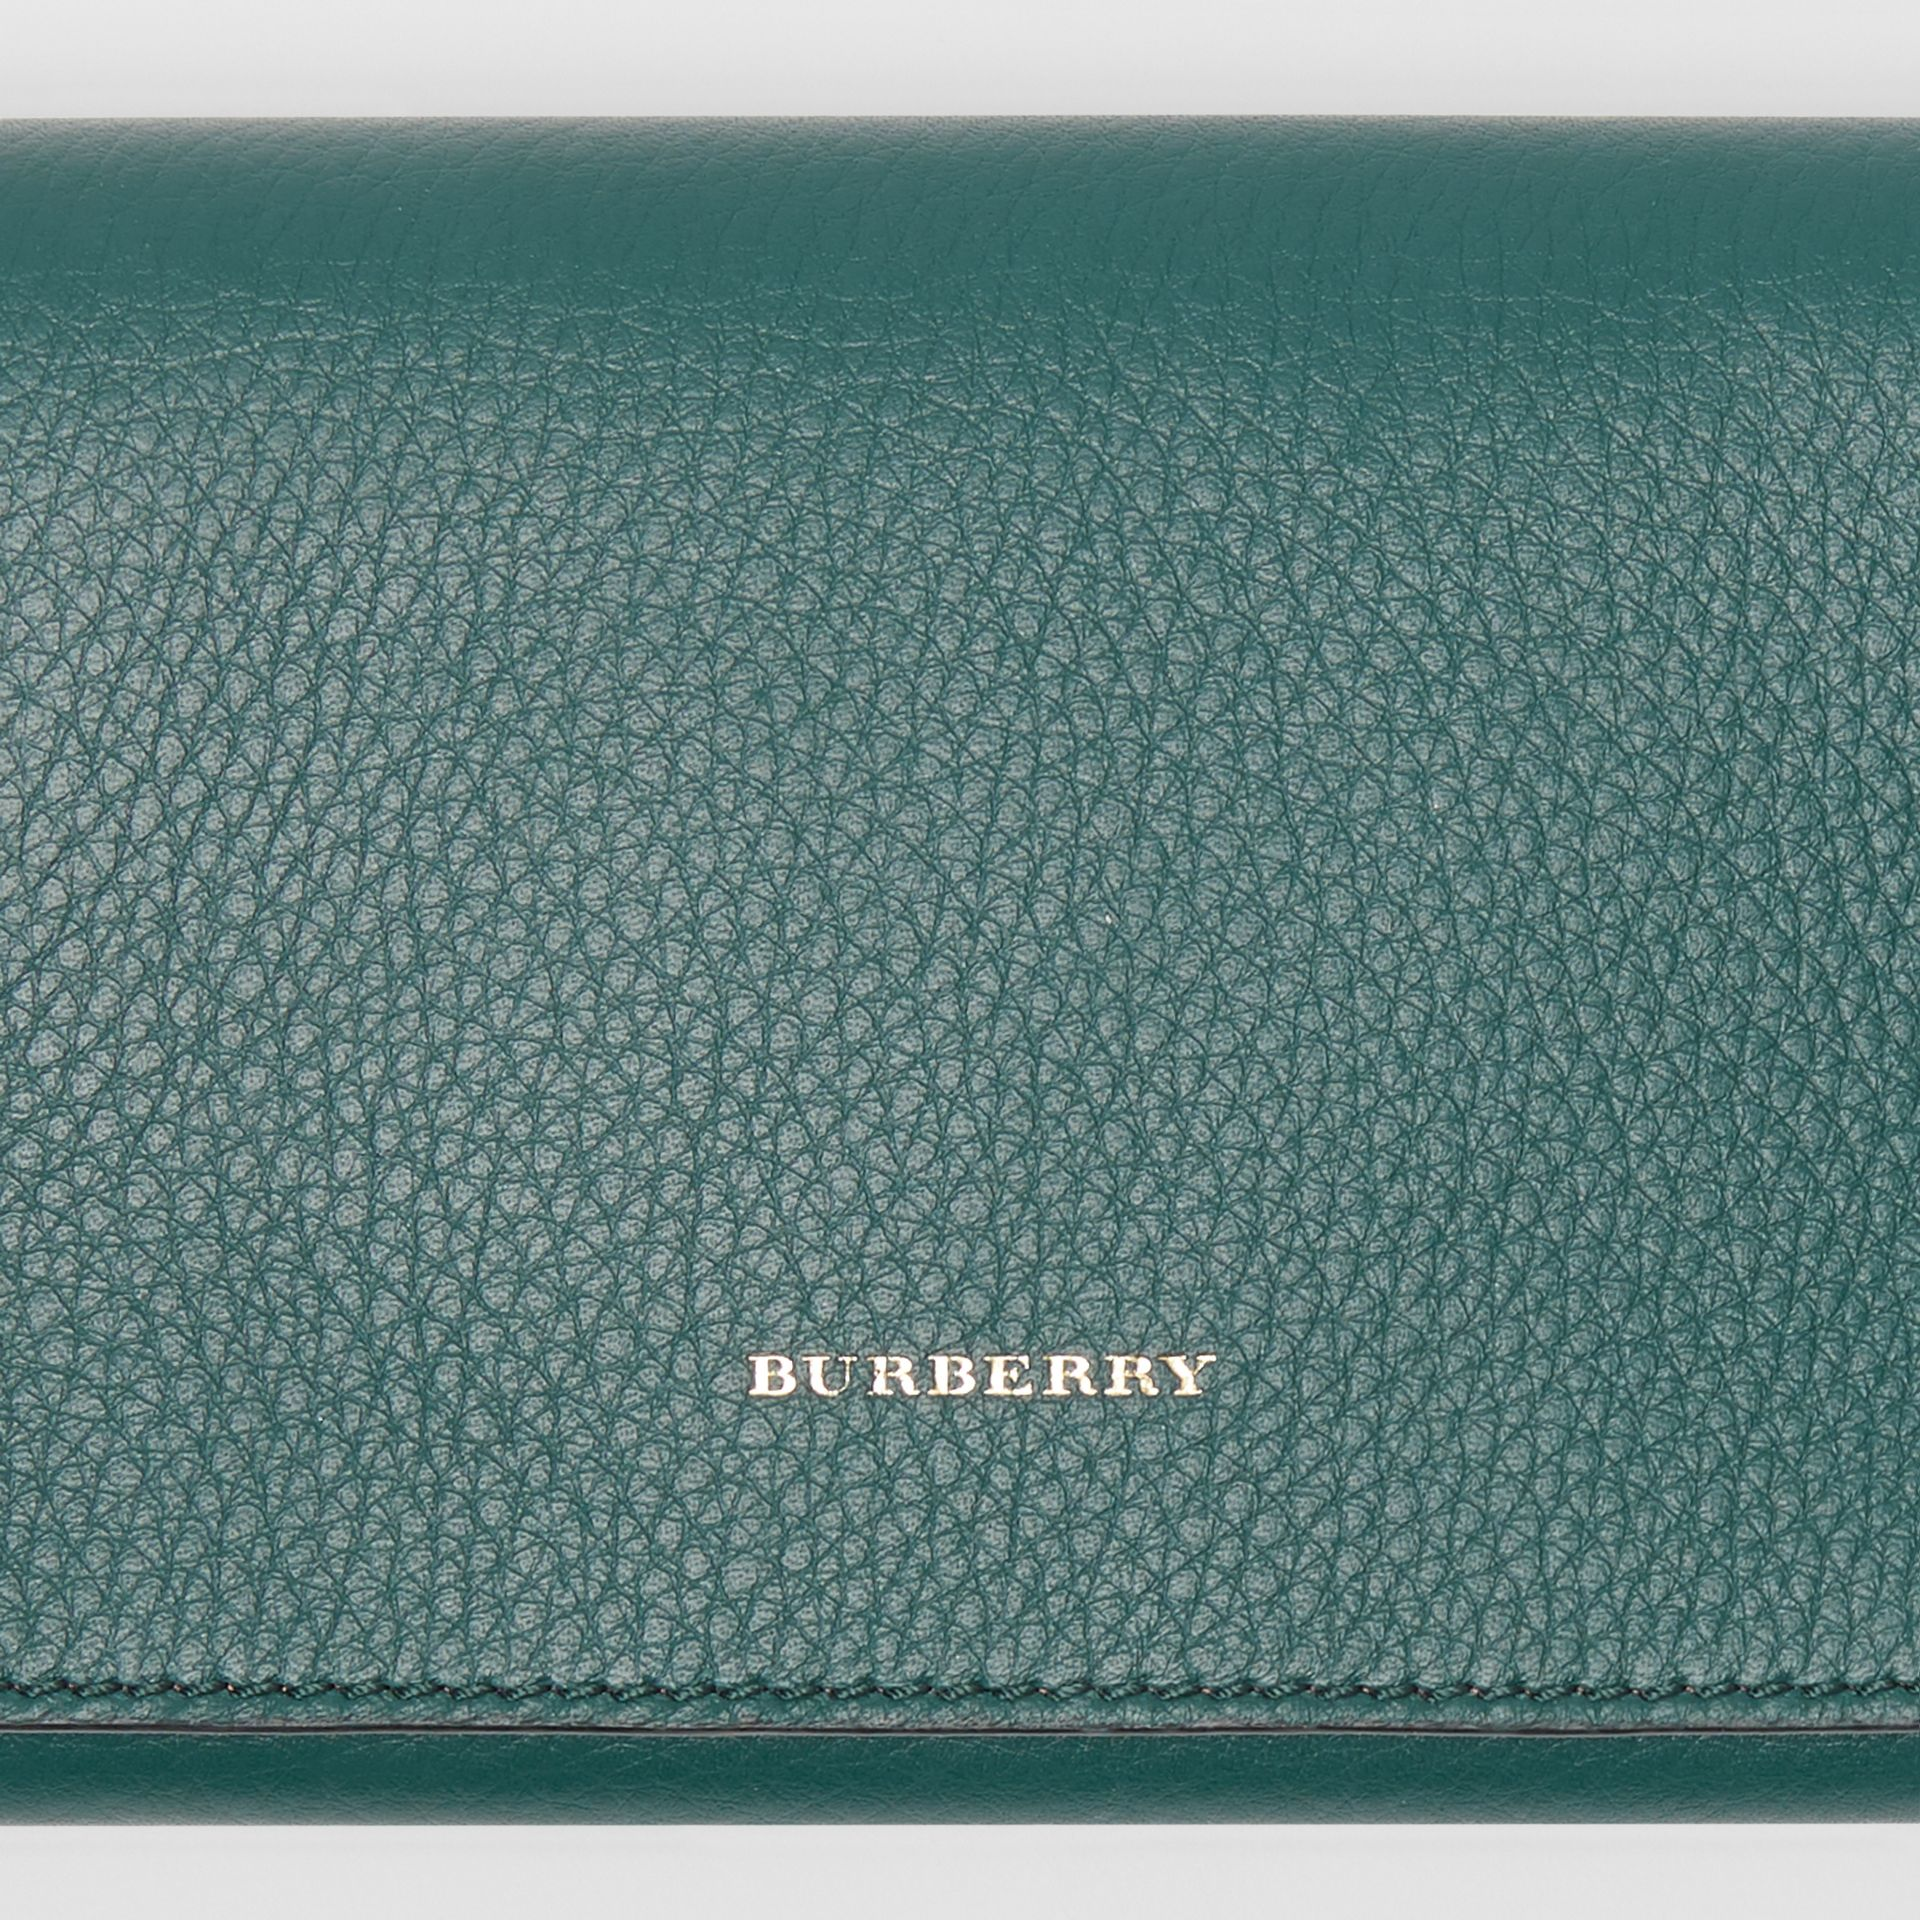 Two-tone Leather Continental Wallet in Dark Cyan - Women | Burberry - gallery image 1